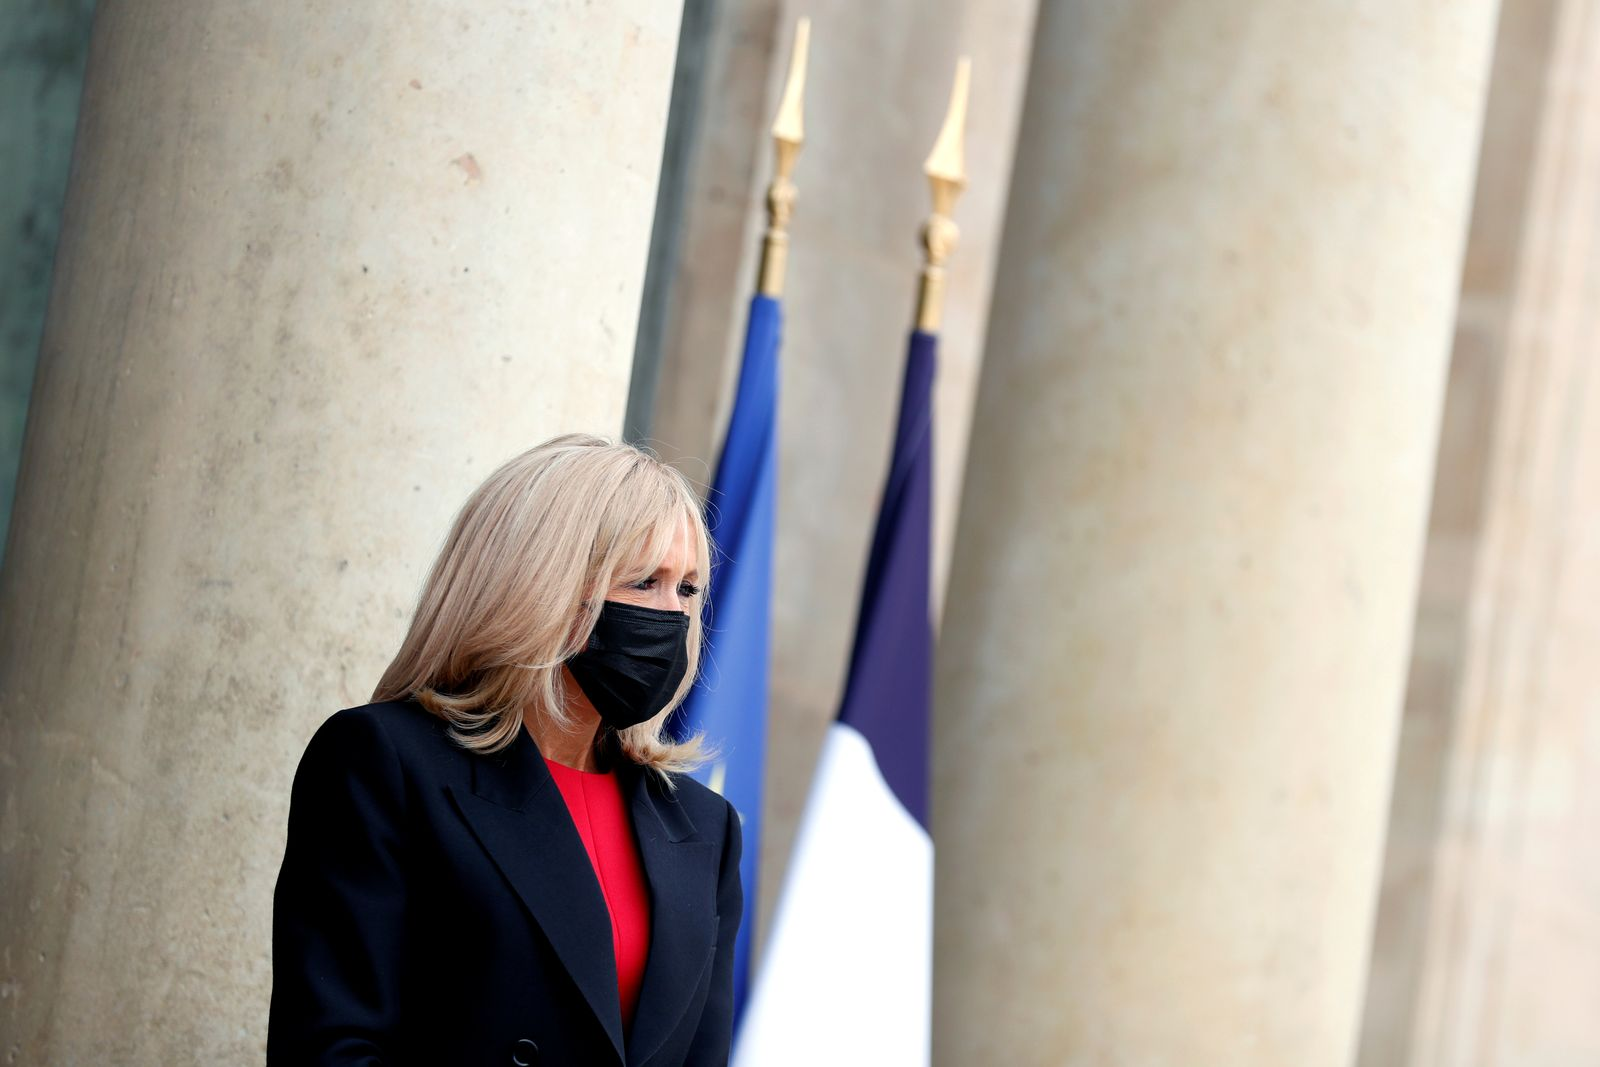 French first lady Brigitte Macron and her Mexican counterpart Beatriz Gutierrez Muller meet at the Elysee Place, in Paris